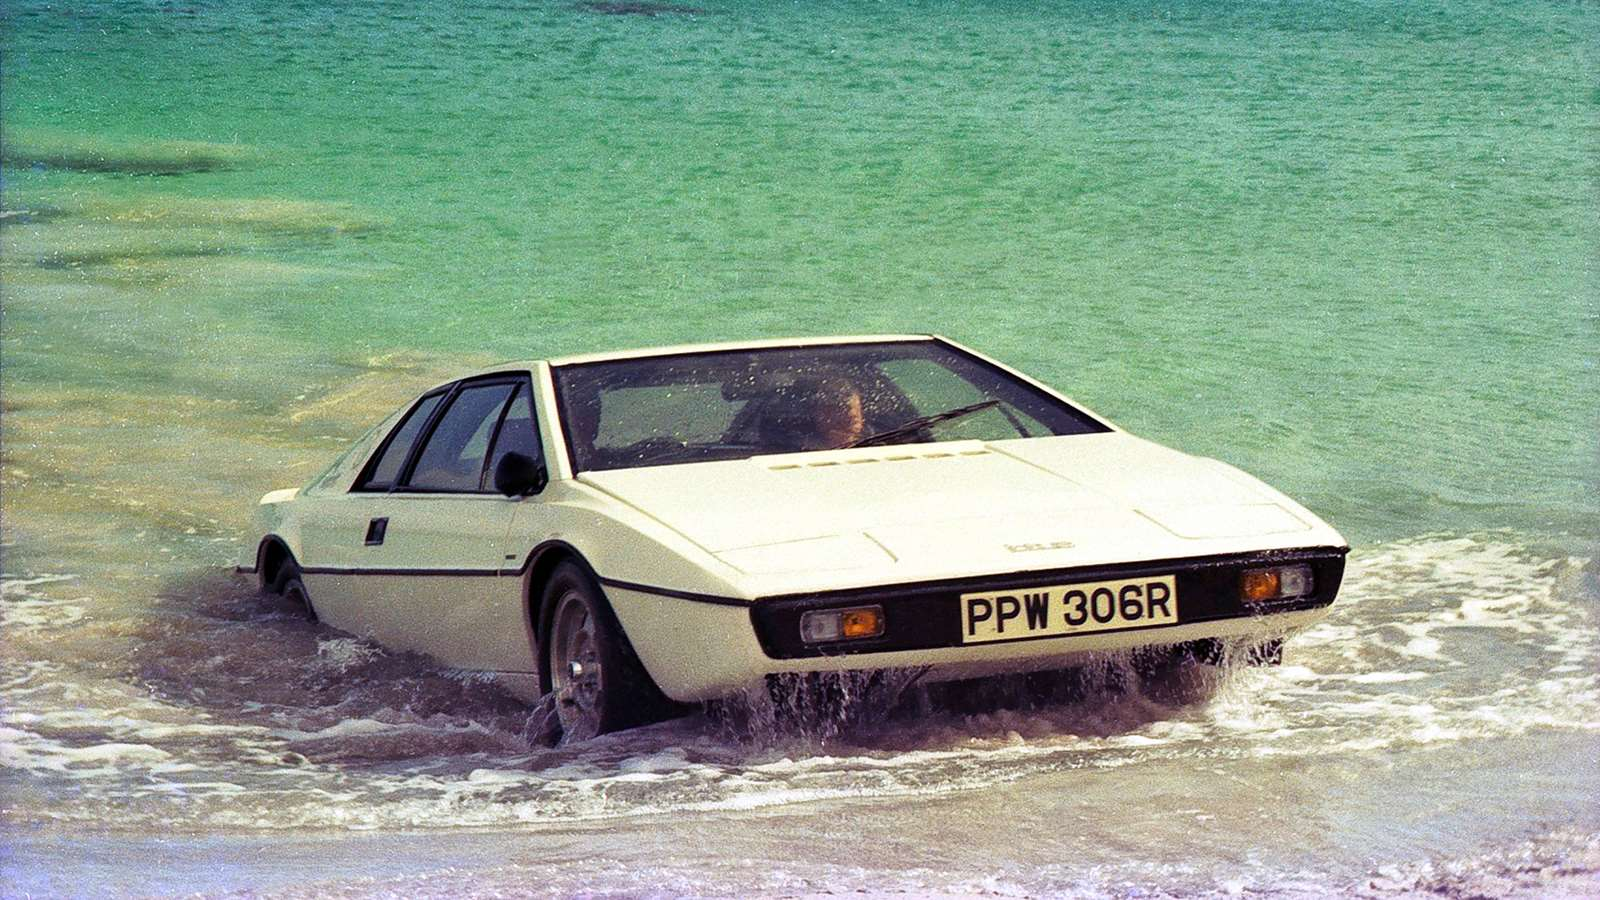 best iconic movie cars of all time James Bond Lotus Esprit The Spy Who Loved Me submarine